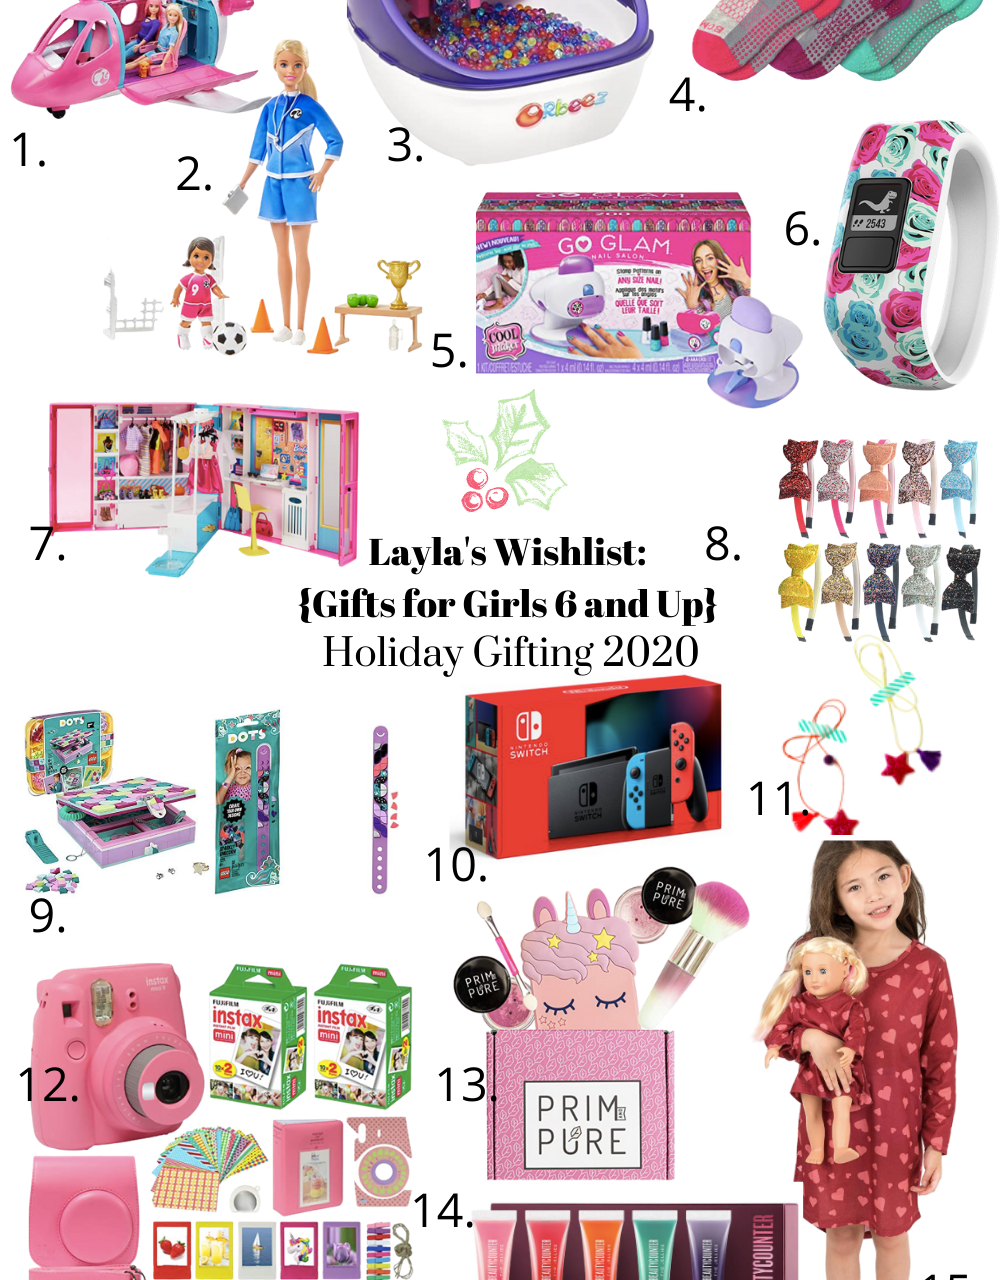 Layla's Wishlist: Christmas Gifts for Girls 6 & Up